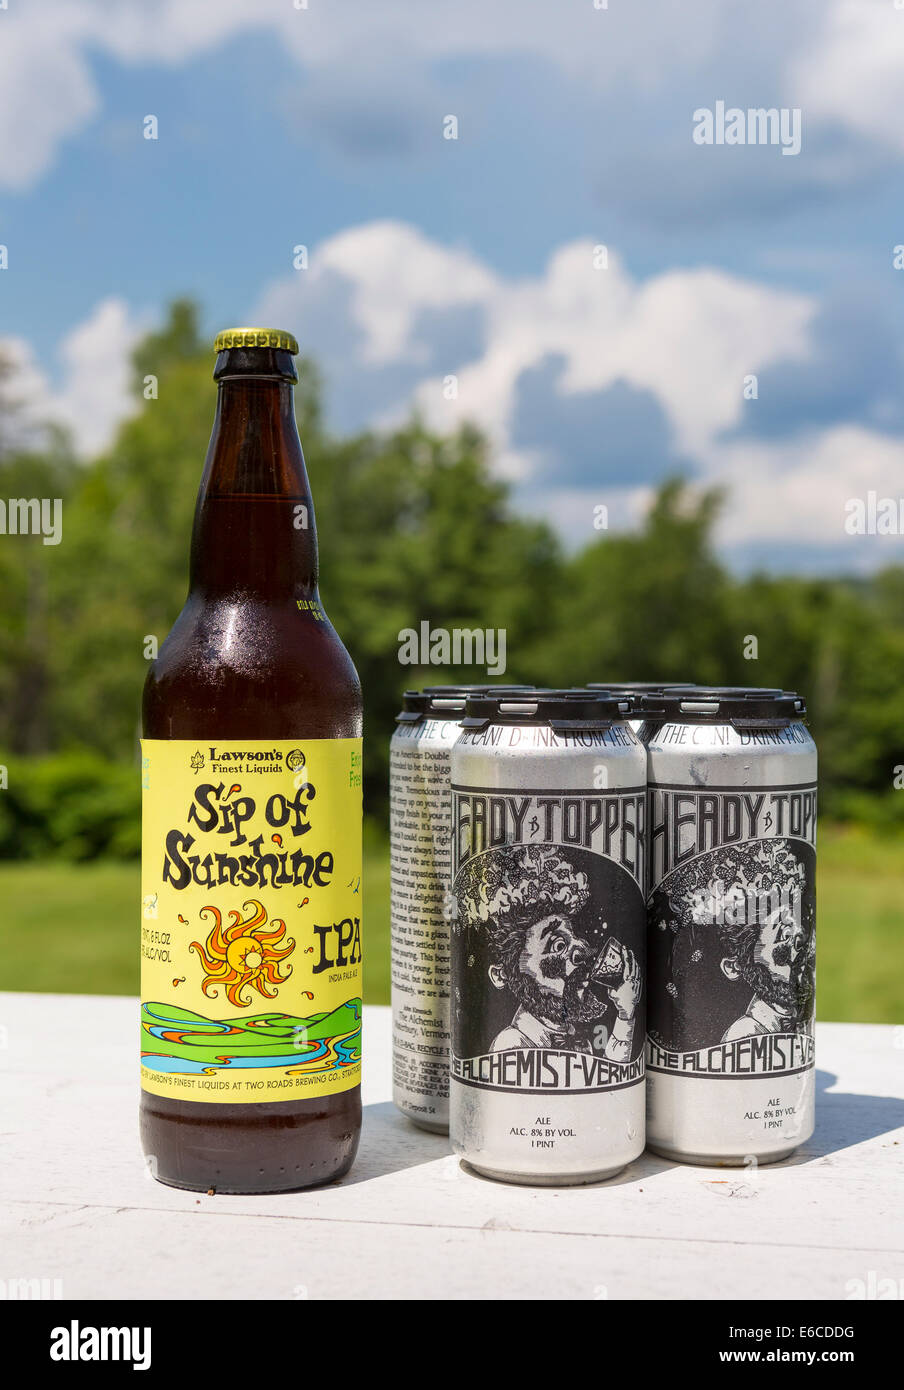 VERMONT, USA - Lawson's Sip of Sunshine, and Heady Topper, craft beers made in Vermont. - Stock Image